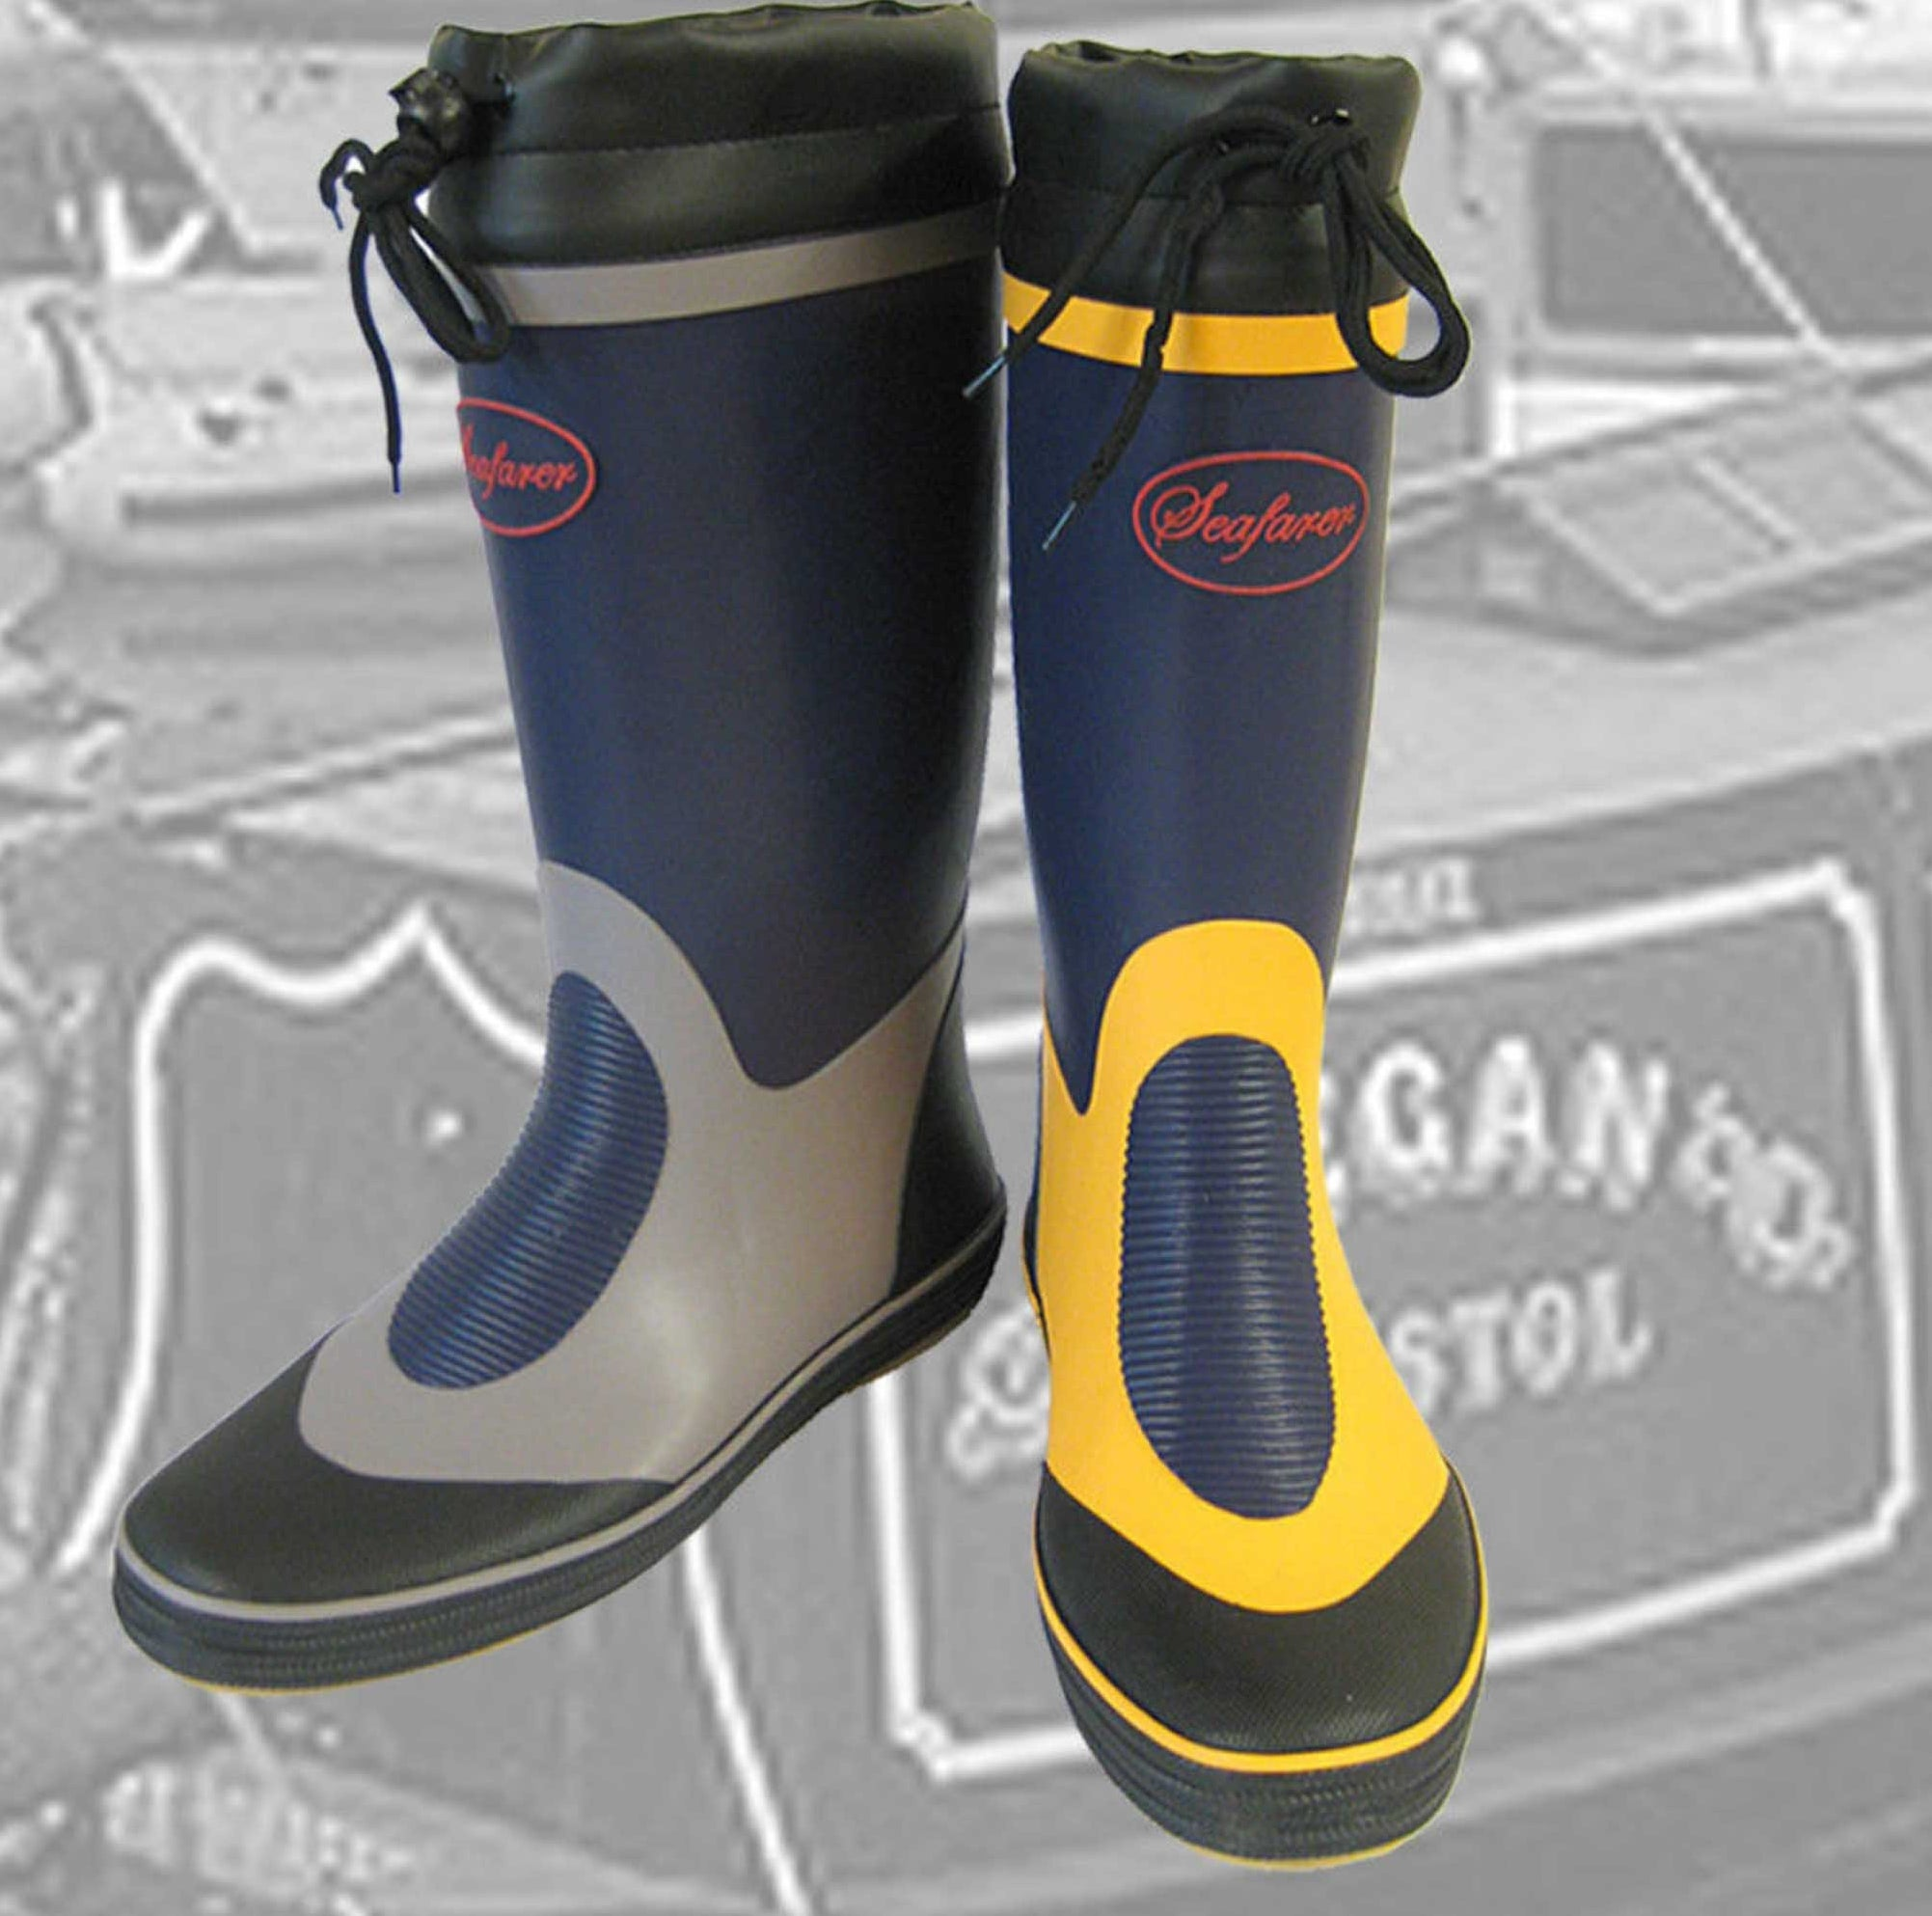 SEAFARER SAILING - WELLY - BOOTS